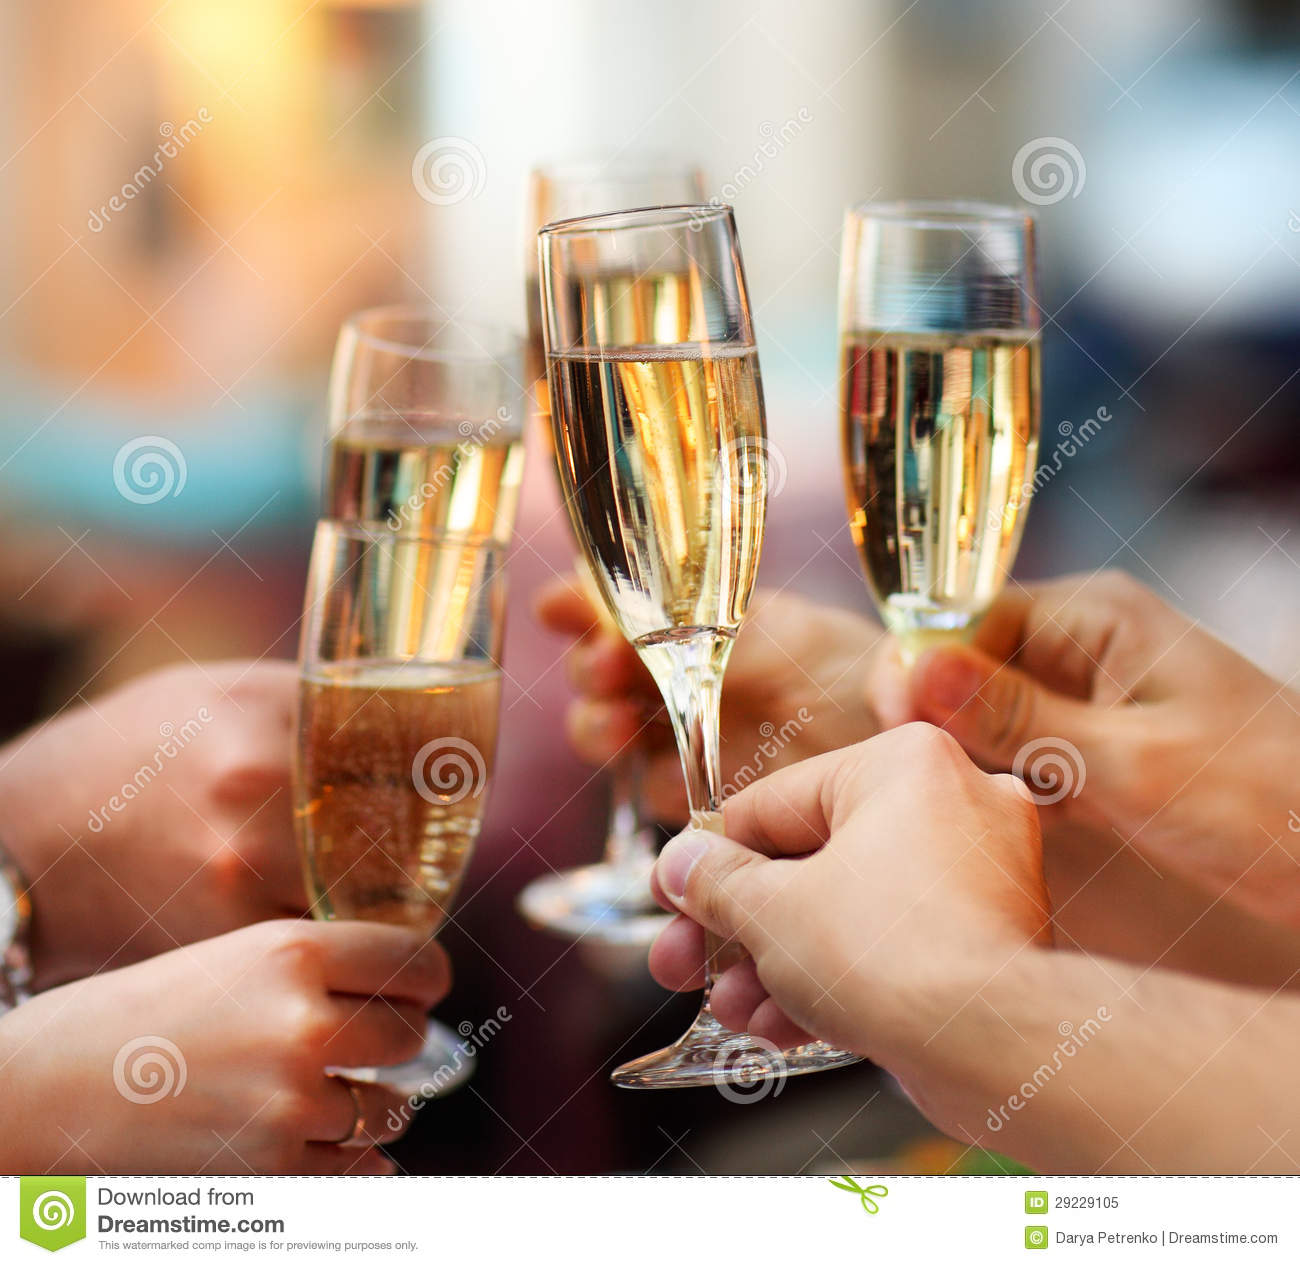 Celebration People Holding Glasses Of Champagne Royalty Free Stock Photo